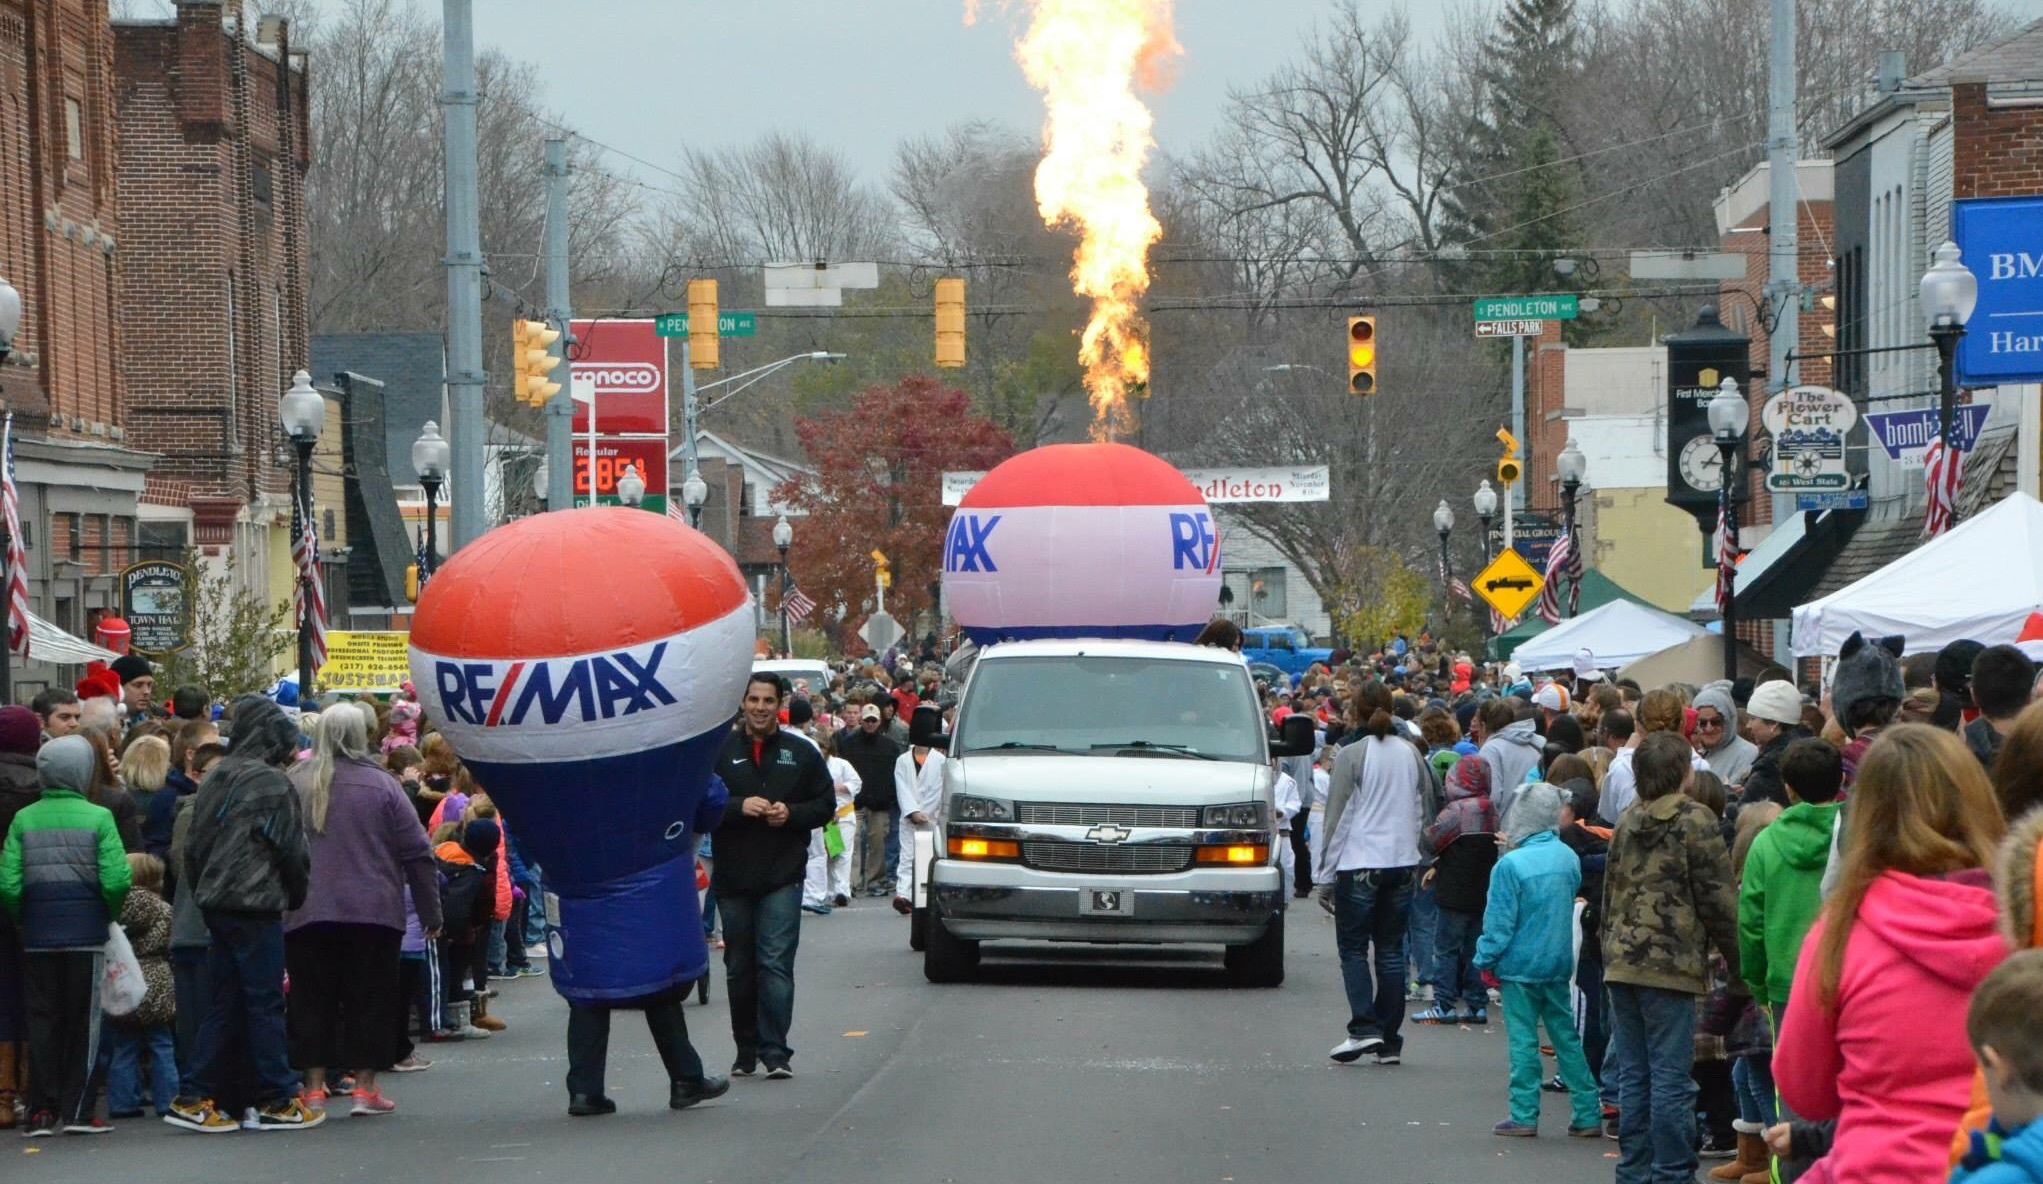 RE/MAX Legacy Balloon at Christmas in Pendleton, IN